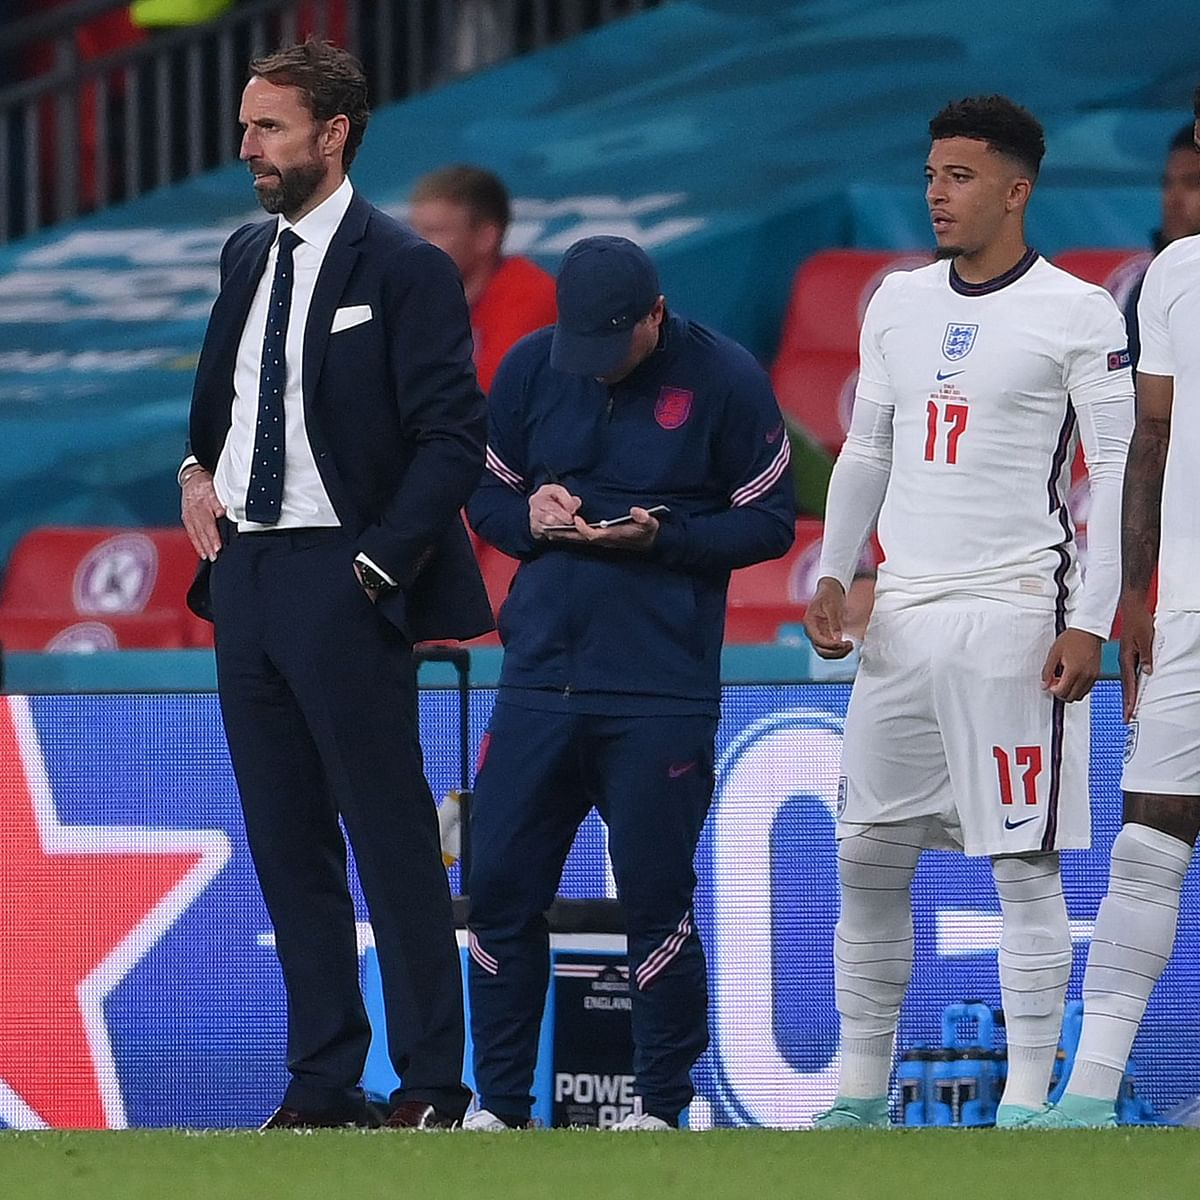 'We're disgusted': English football body slams 'racist' trolls amid online furore over missed penalties in Euro 2020 final